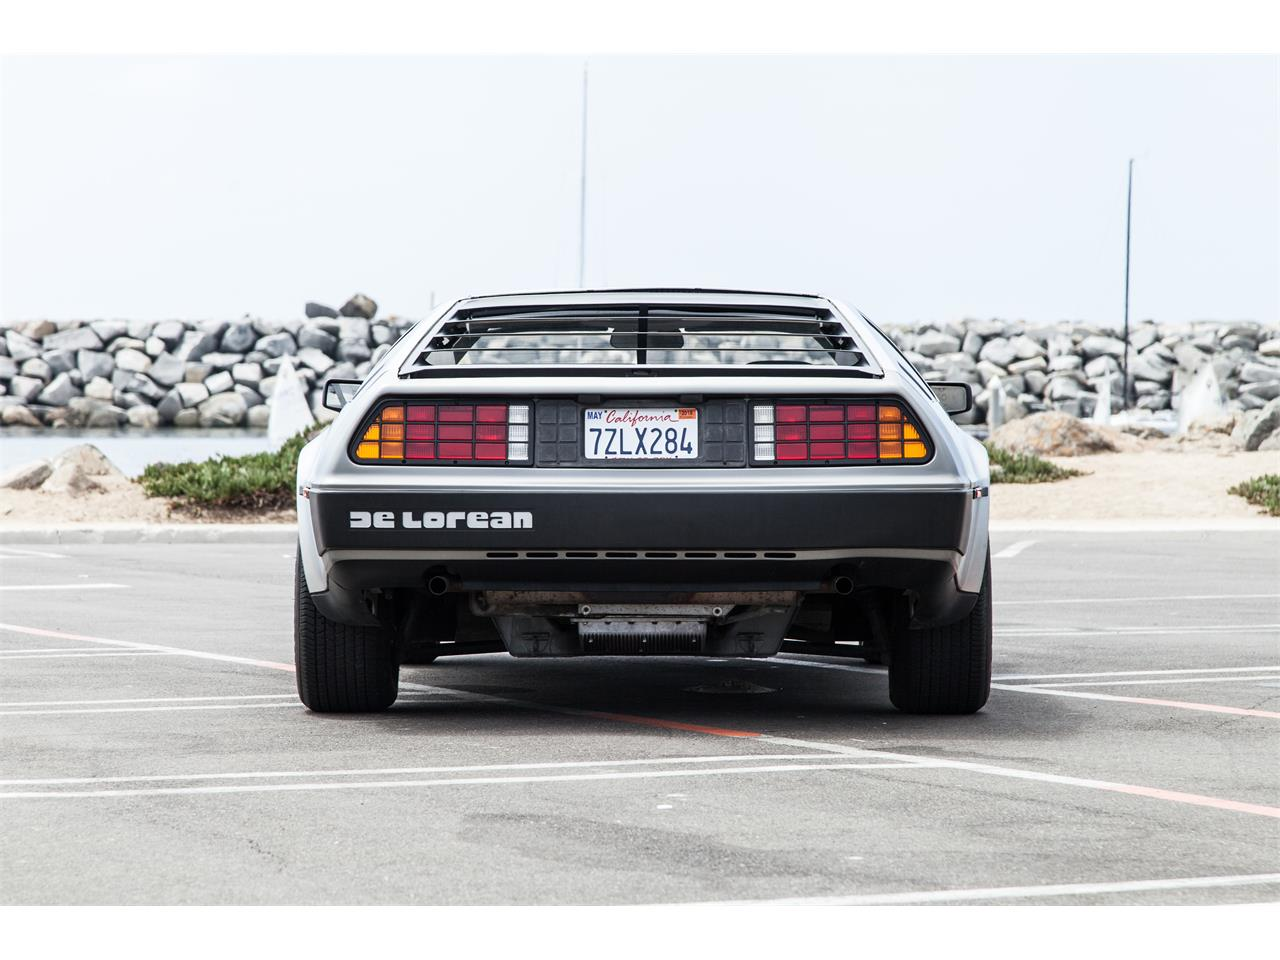 Large Picture of '81 DeLorean DMC-12 located in Redondo Beach California - $54,000.00 Offered by a Private Seller - P3AG